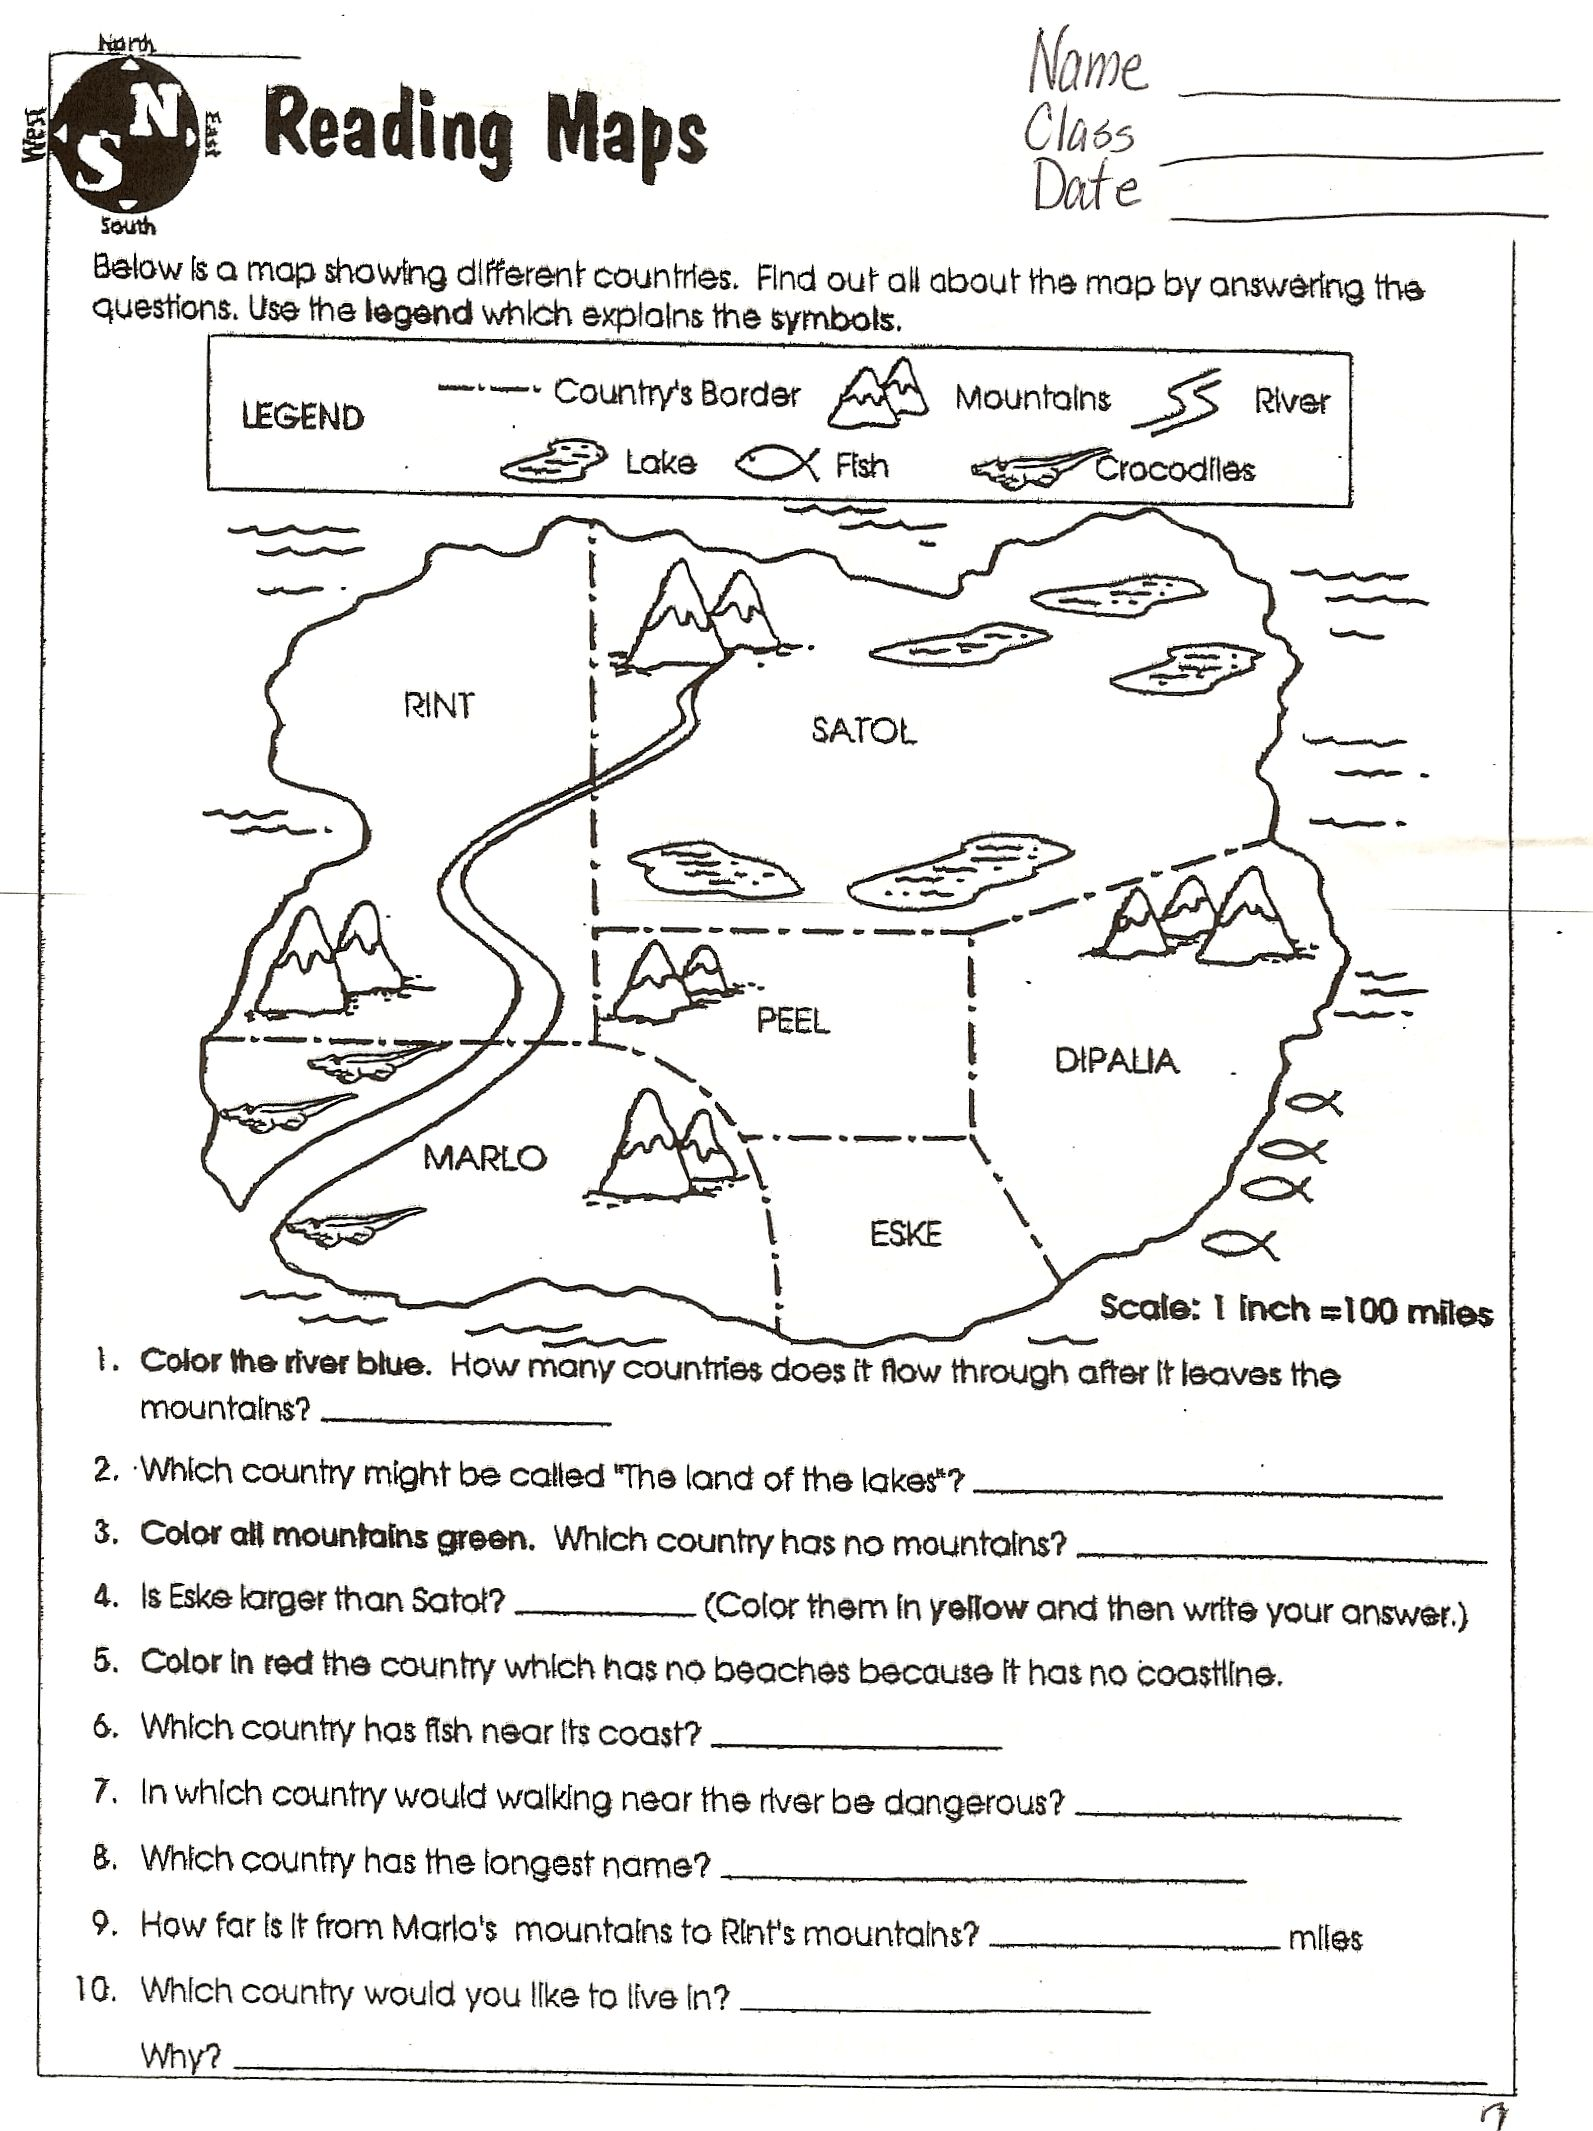 Worksheets 8th Grade Geography Worksheets social studies skills study notes and note homeschool worksheetshomeschooling resources5th grade worksheetsgeography